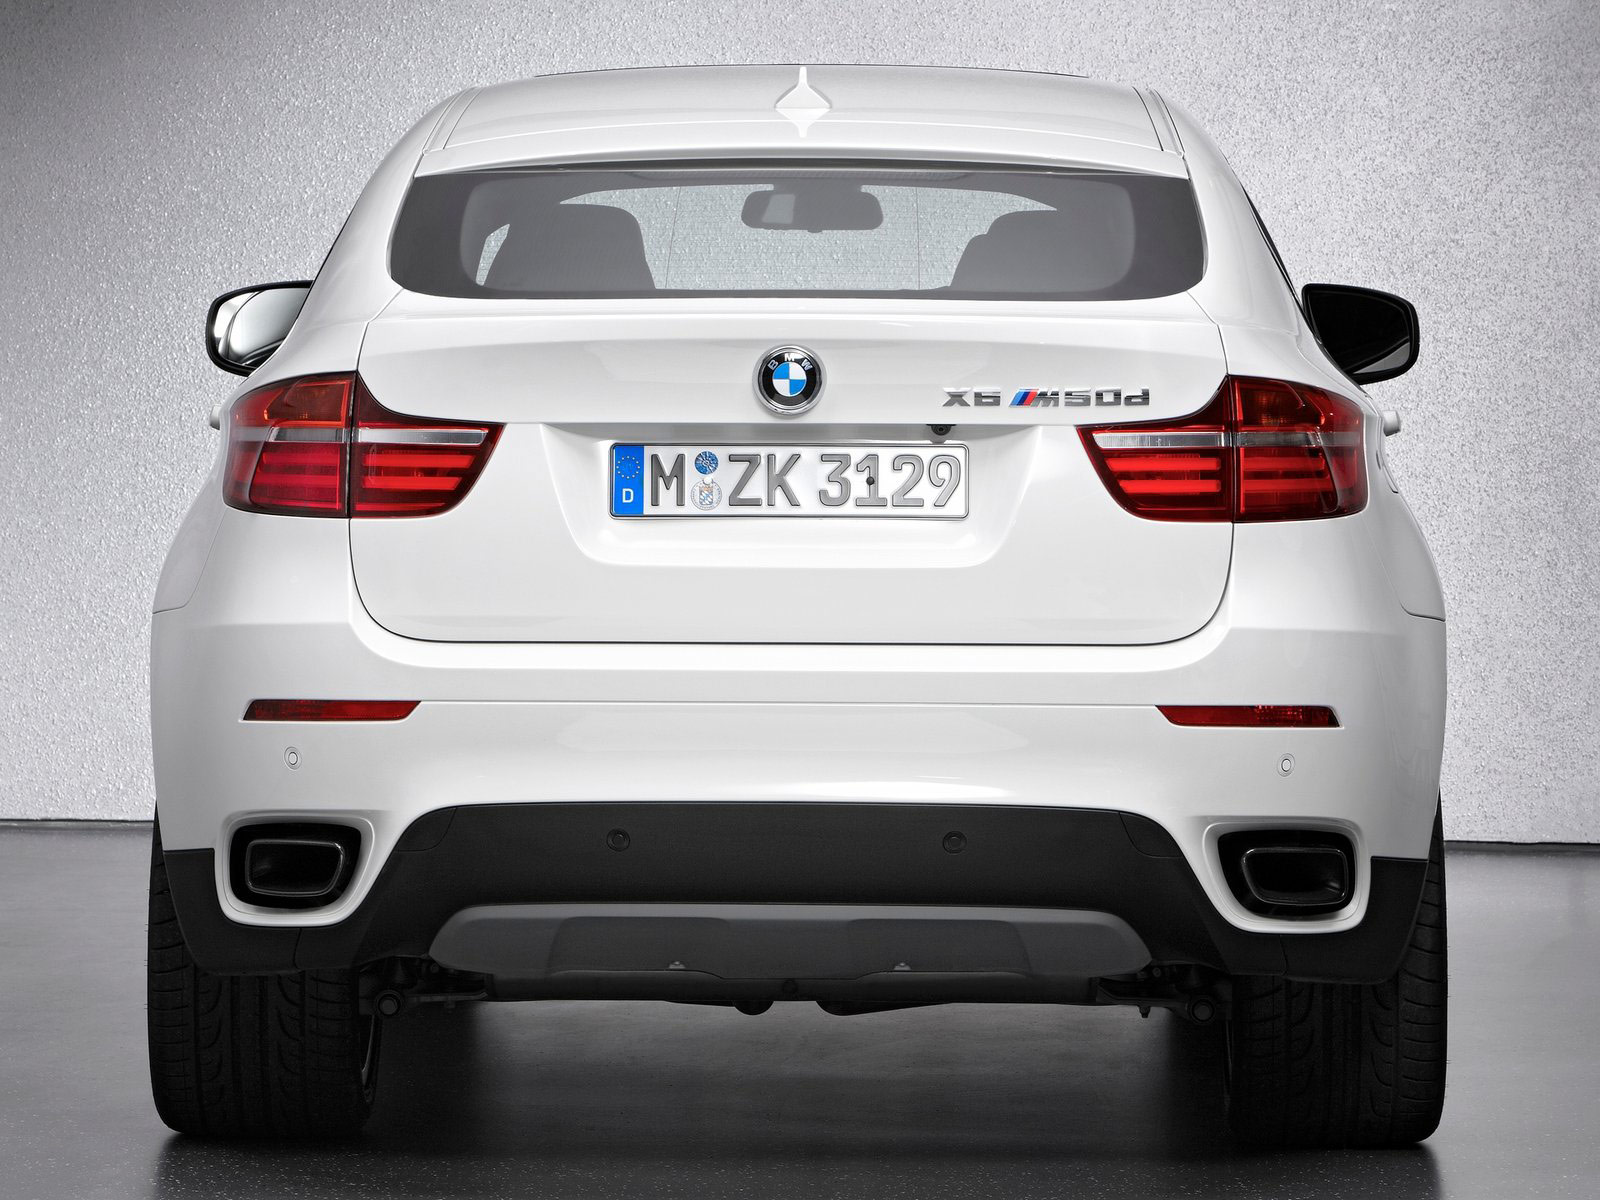 2013 bmw x6 m50d car insurance information. Black Bedroom Furniture Sets. Home Design Ideas